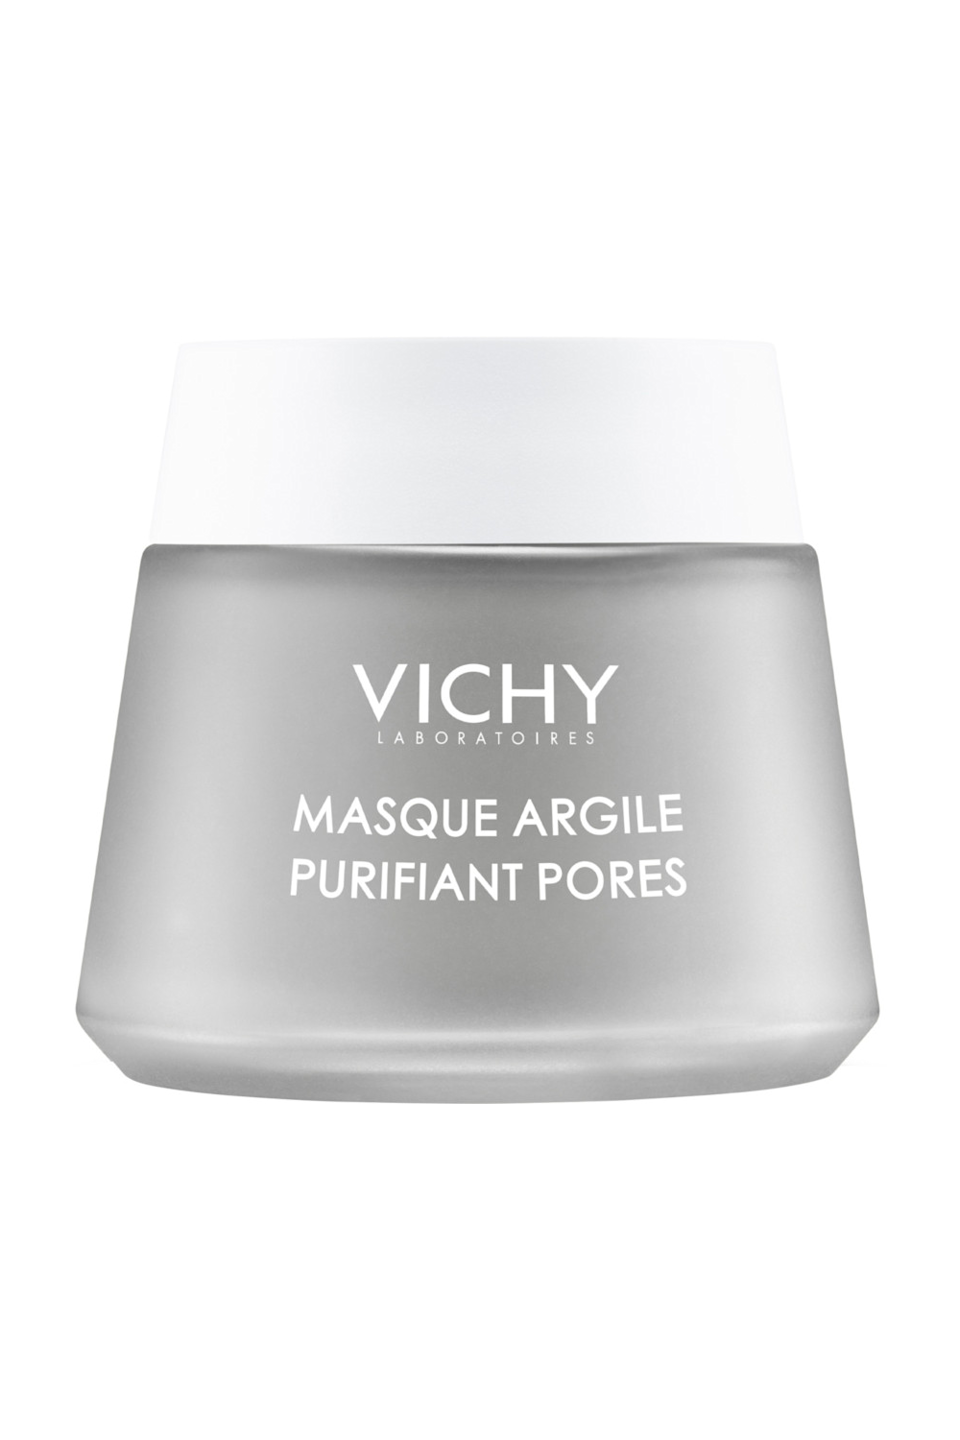 "<p><strong>VICHY</strong></p><p>ulta.com</p><p><strong>$20.00</strong></p><p><a href=""https://go.redirectingat.com?id=74968X1596630&url=https%3A%2F%2Fwww.ulta.com%2Fpore-purifying-clay-face-mask%3FproductId%3DxlsImpprod15622709&sref=https%3A%2F%2Fwww.cosmopolitan.com%2Fstyle-beauty%2Fbeauty%2Fg36176731%2Fbest-clay-face-masks%2F"" rel=""nofollow noopener"" target=""_blank"" data-ylk=""slk:Shop Now"" class=""link rapid-noclick-resp"">Shop Now</a></p><p>A blend of kaolin and bentonite clays come together in this face mask to absorb excess oil, while hydrators like aloe vera and allantoin work to soothe and moisturize your skin. The result? <strong>Smoother, softer skin and <a href=""https://www.cosmopolitan.com/style-beauty/beauty/news/a36360/ways-to-make-your-pores-smaller/"" rel=""nofollow noopener"" target=""_blank"" data-ylk=""slk:smaller-looking pores"" class=""link rapid-noclick-resp"">smaller-looking pores</a> </strong>every time you apply it (which, reminder, should be once a week <em>max</em>).</p>"